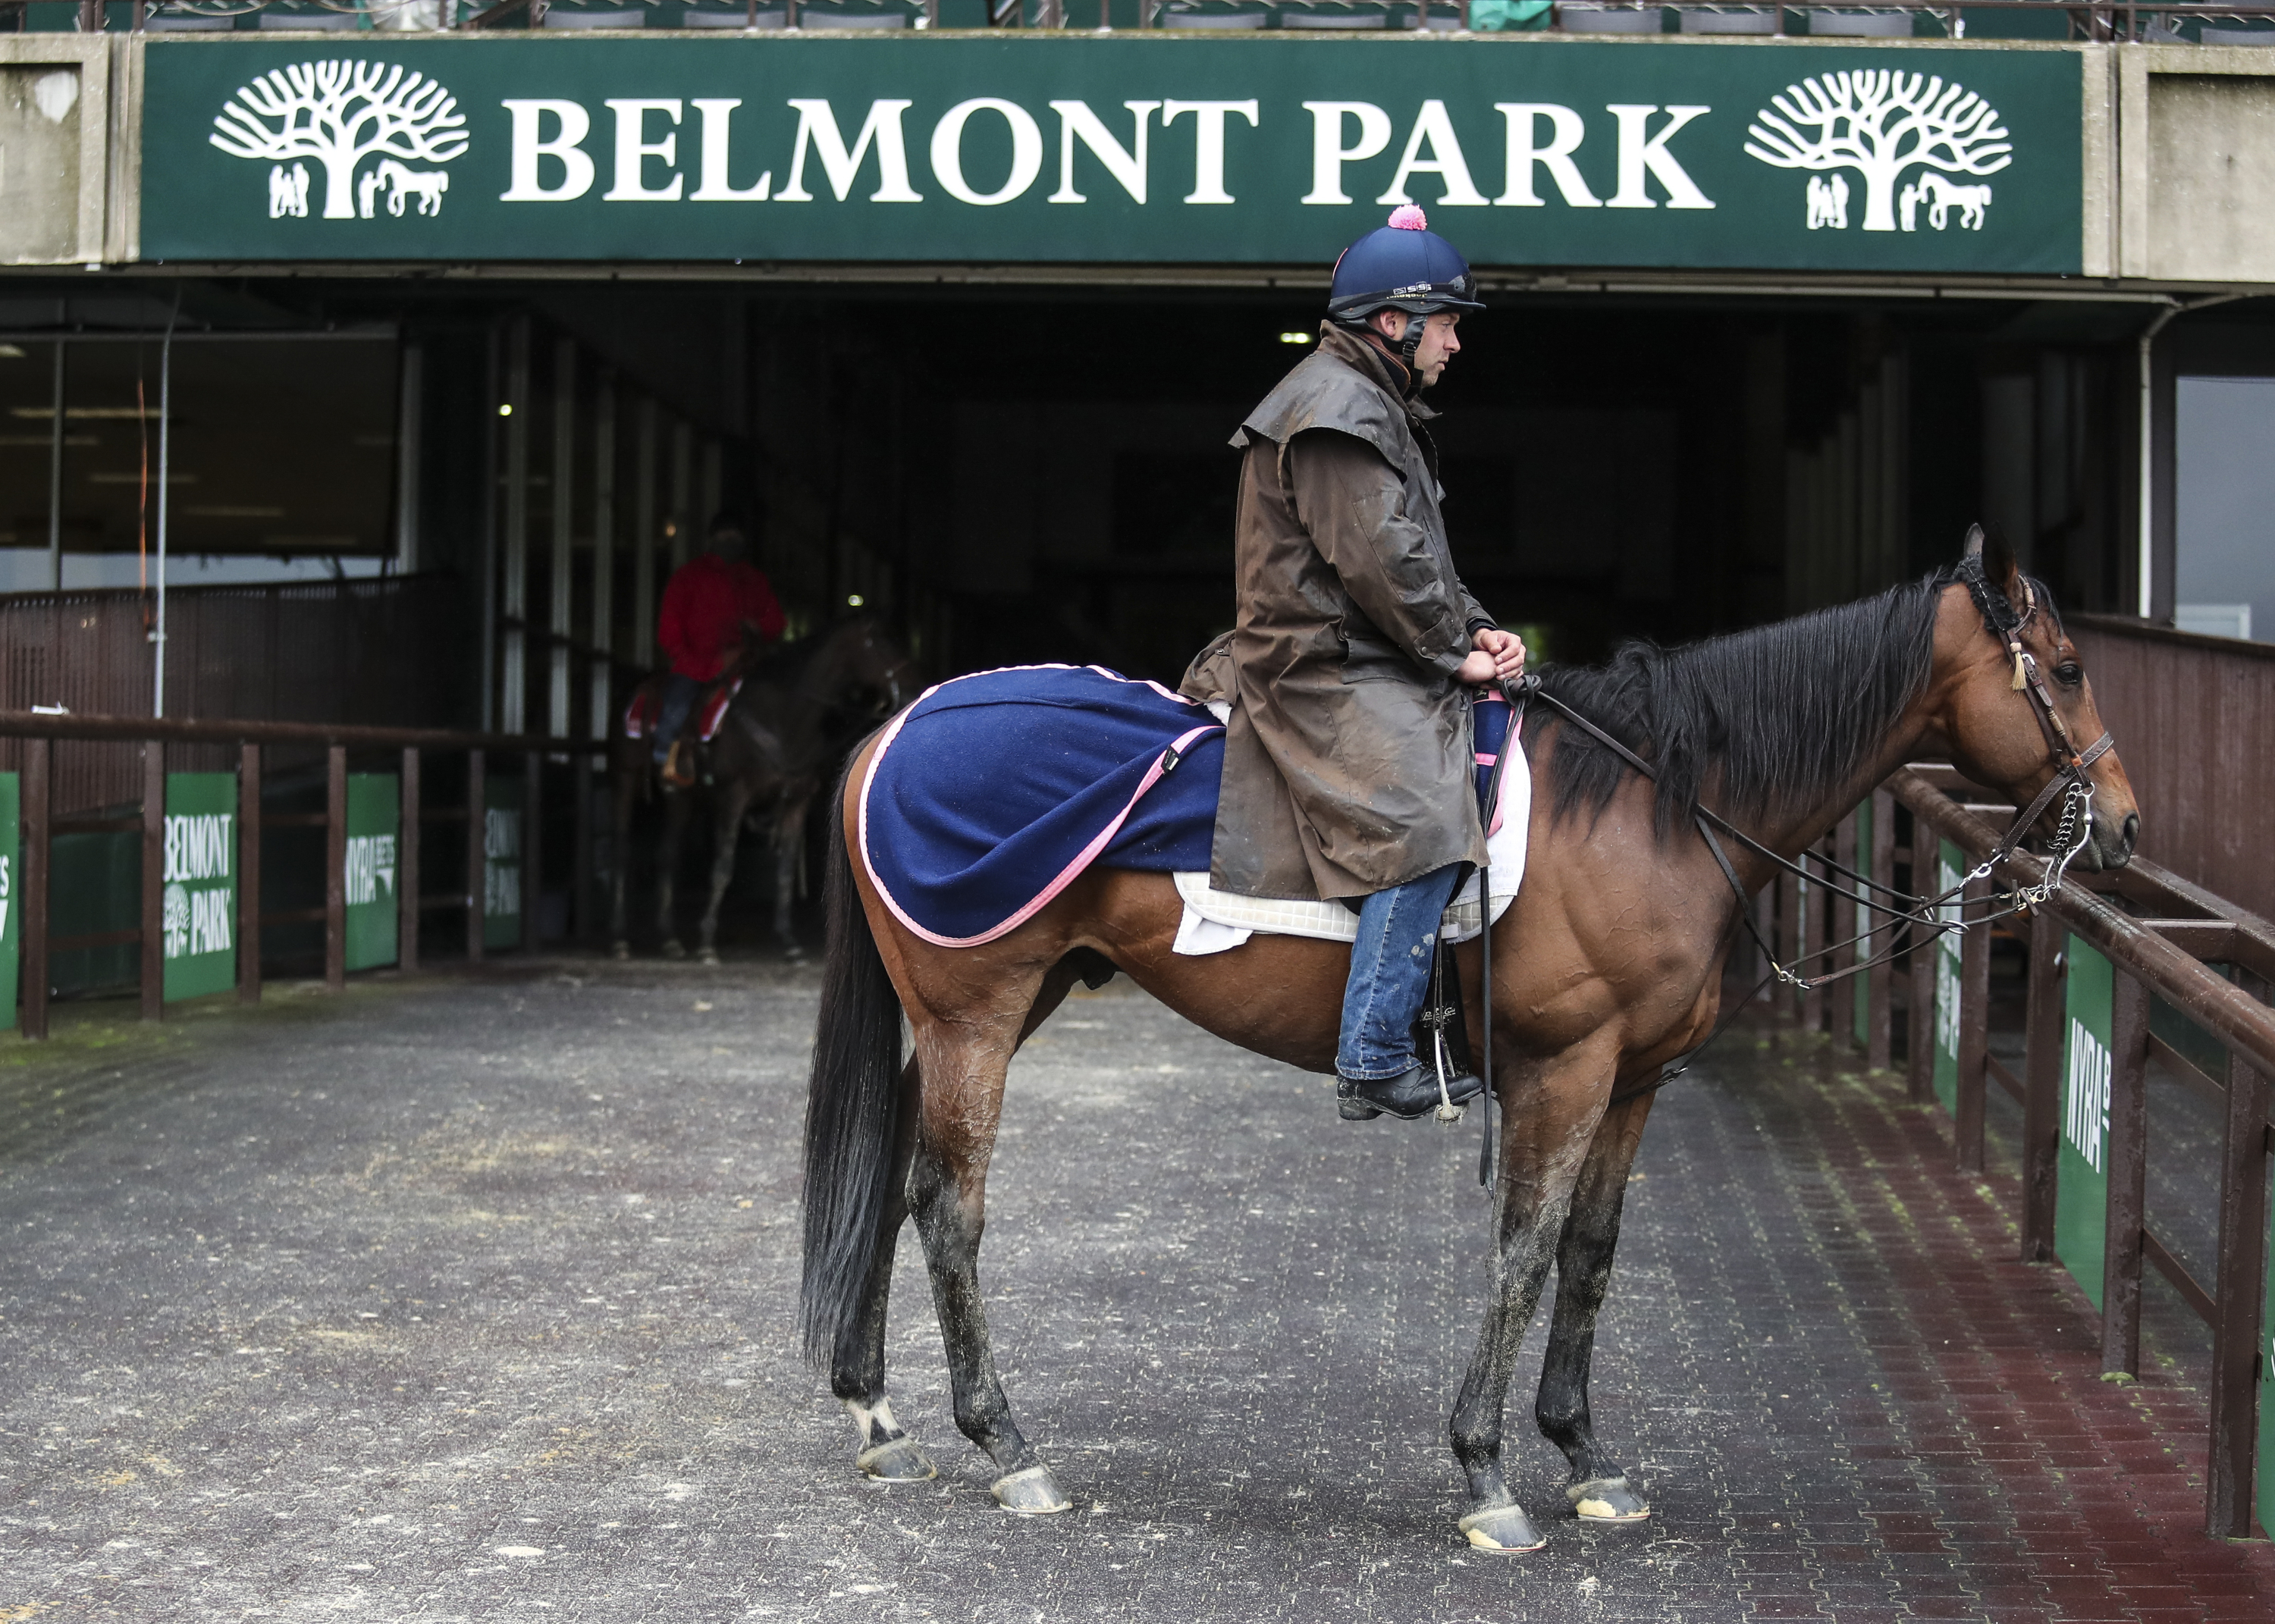 Sunday morning workouts for the 2021 Belmont Stakes at Belmont Park.